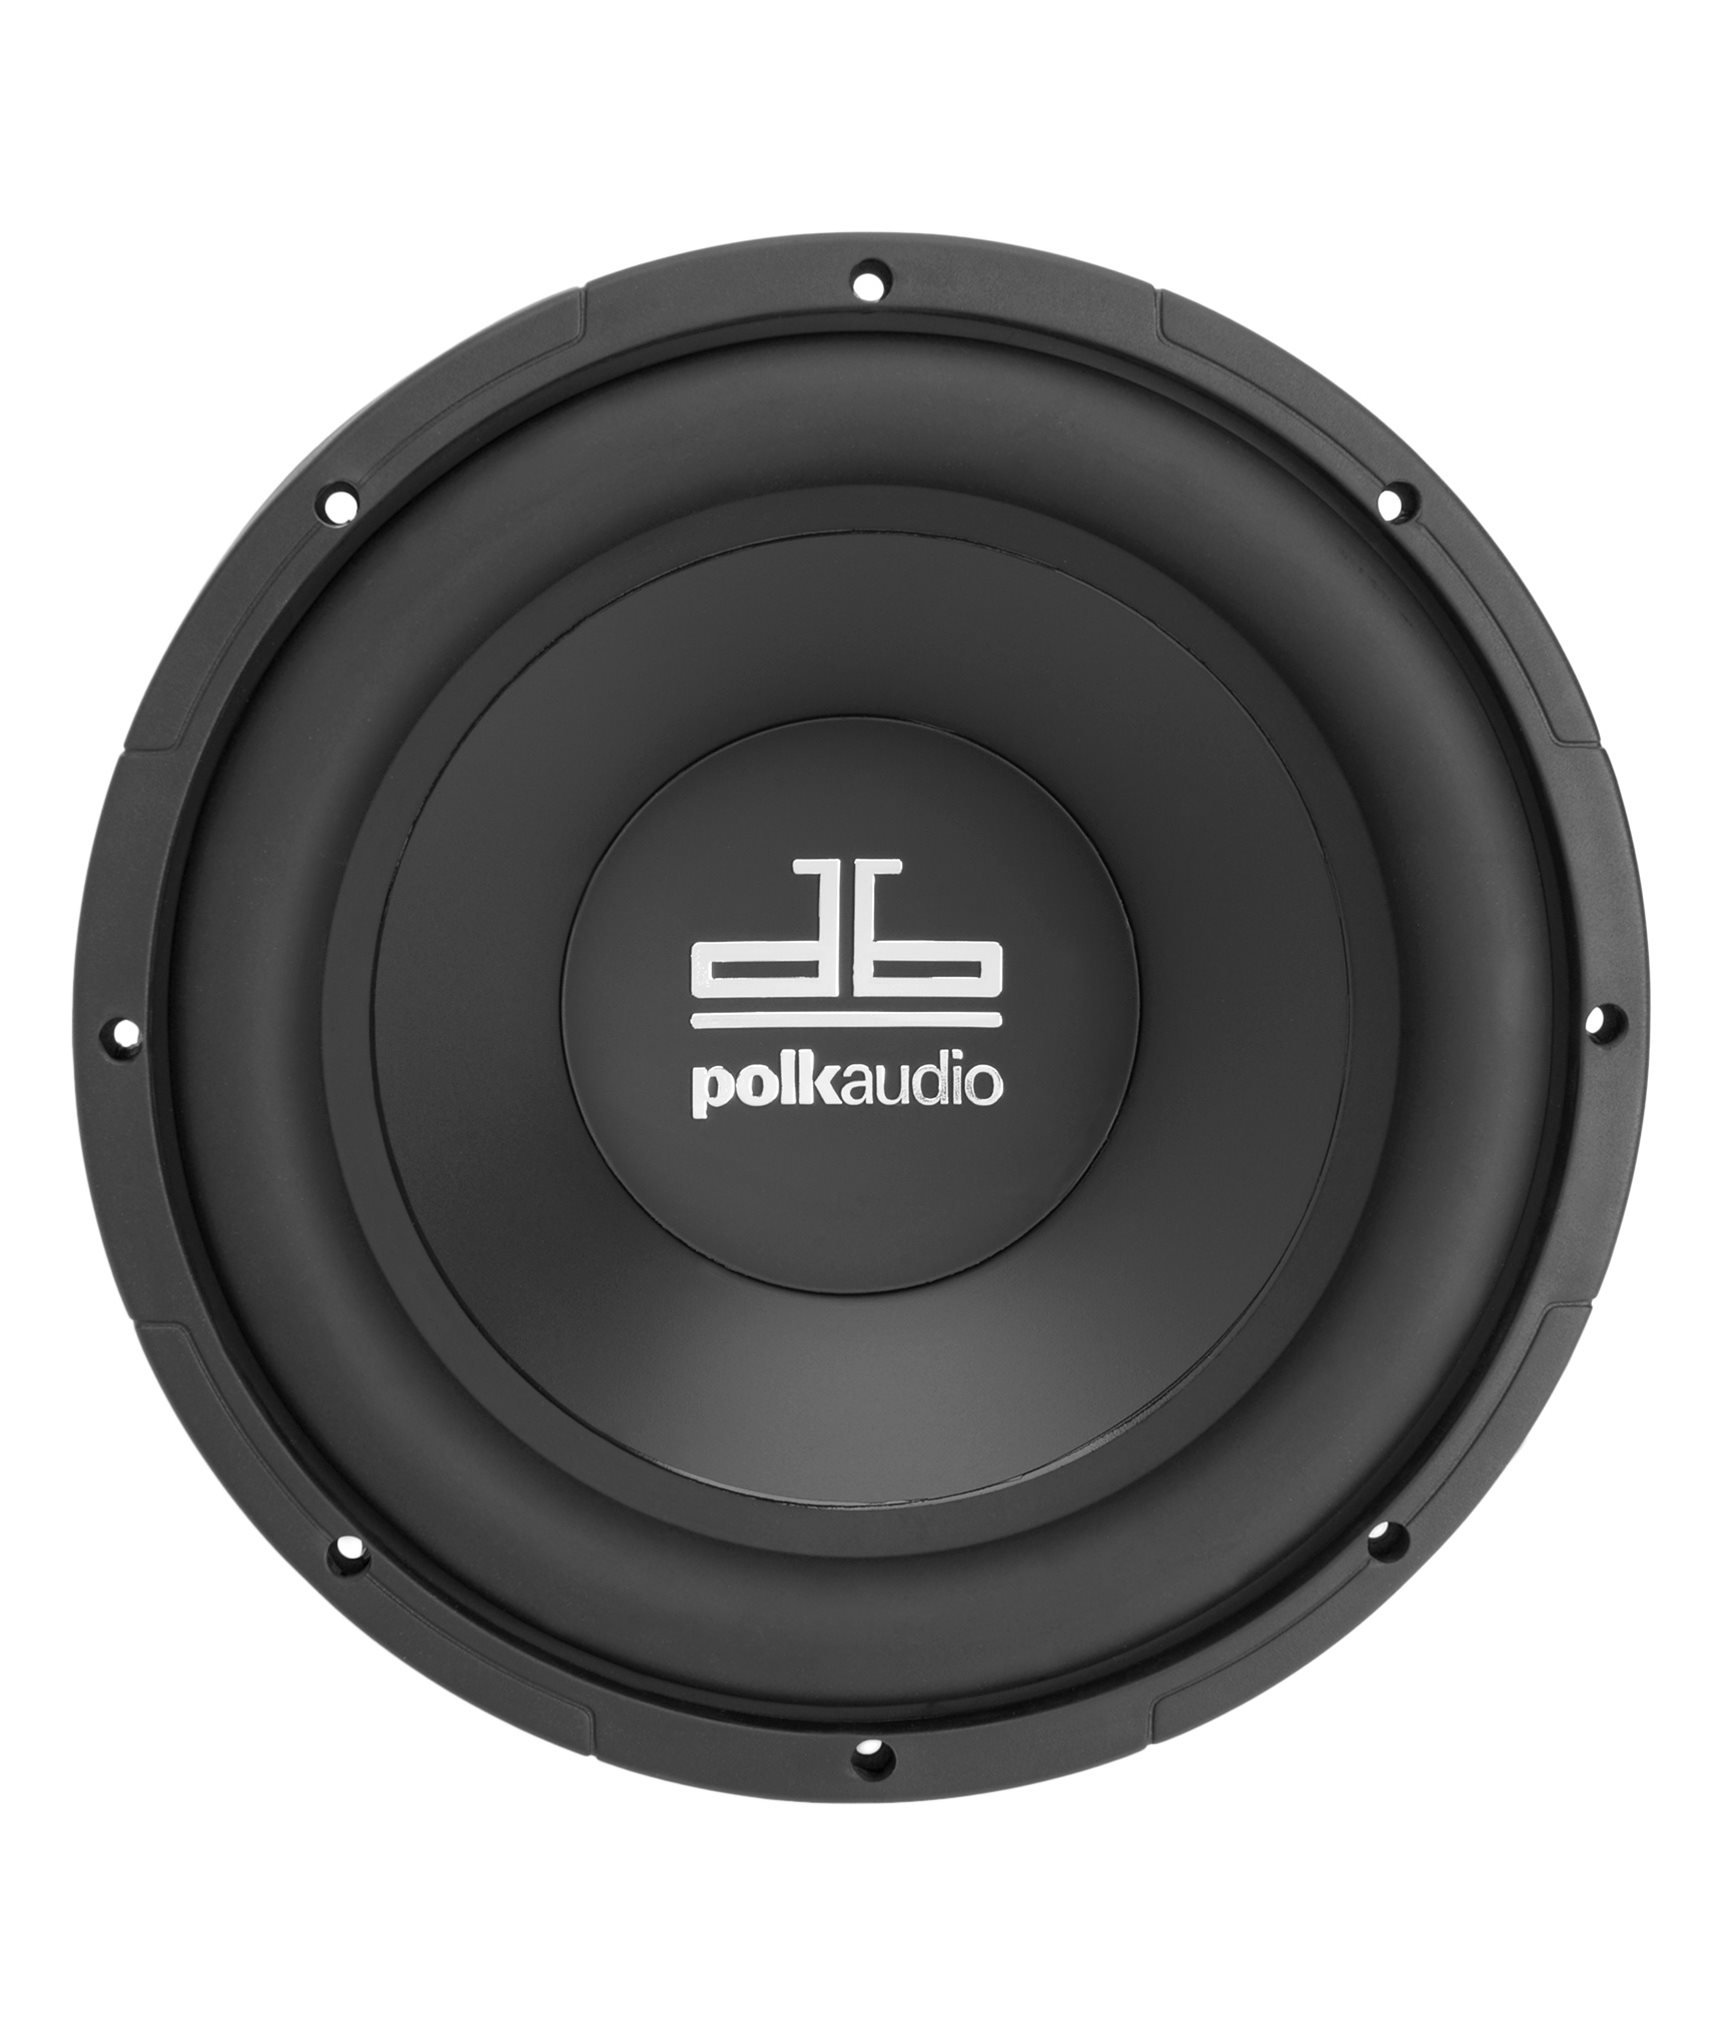 Polk Audio db1040 10-Inch Single Voice Coil Subwoofer (Single, Black)